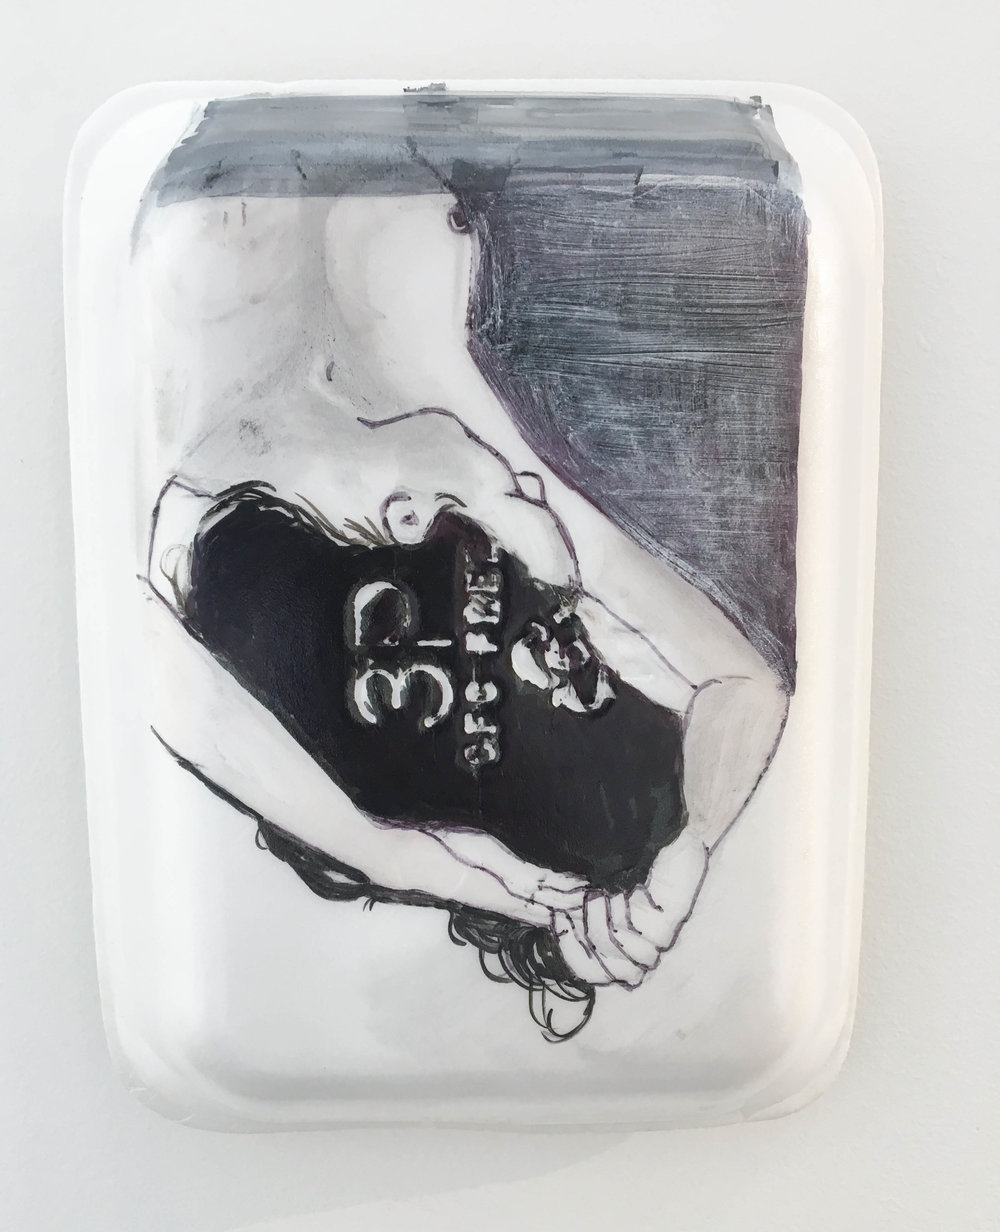 <b>Untitled 4</b><br>Sharpie, gesso, graphite and acrylic on Styrofoam meat tray<br>10.5 x 8 in.